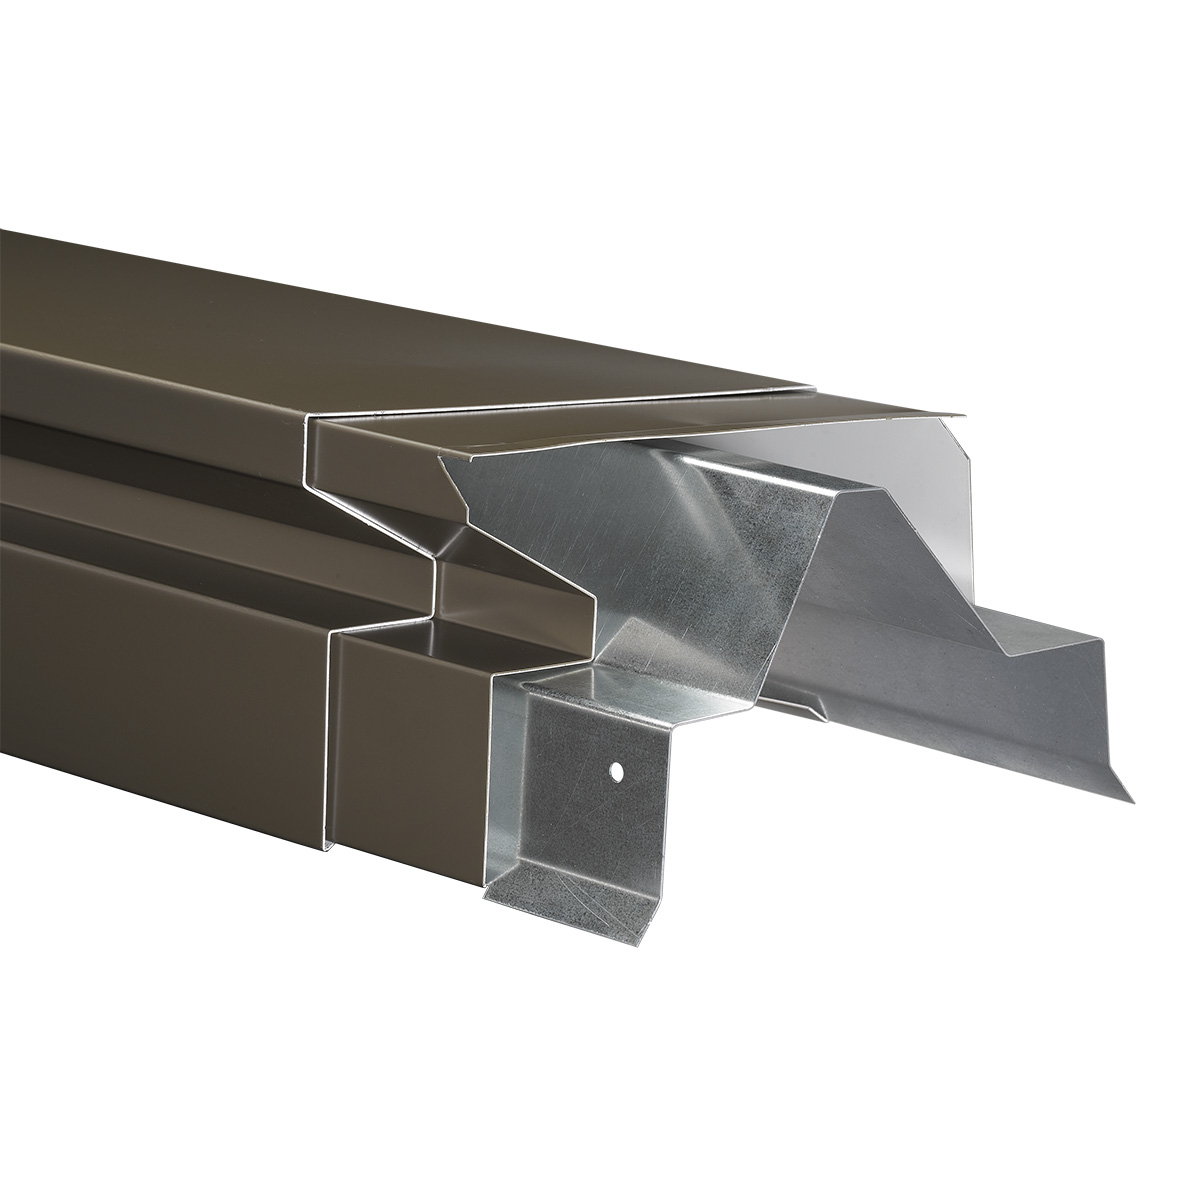 Image of Shadowline Coping